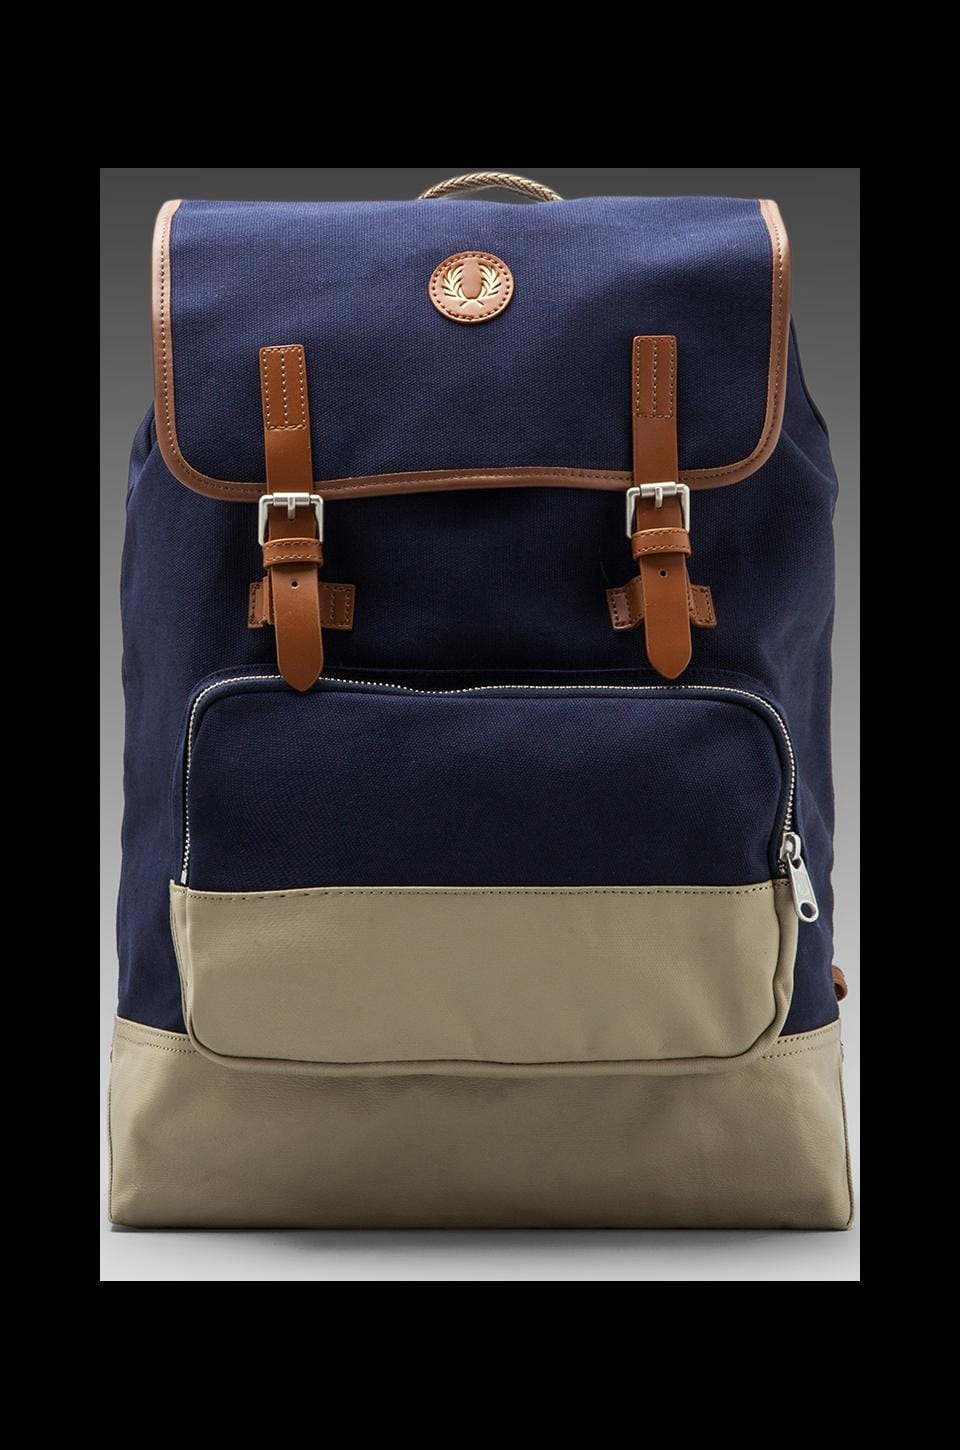 Fred Perry Cotton Rucksack in Carbon Blue/Twill